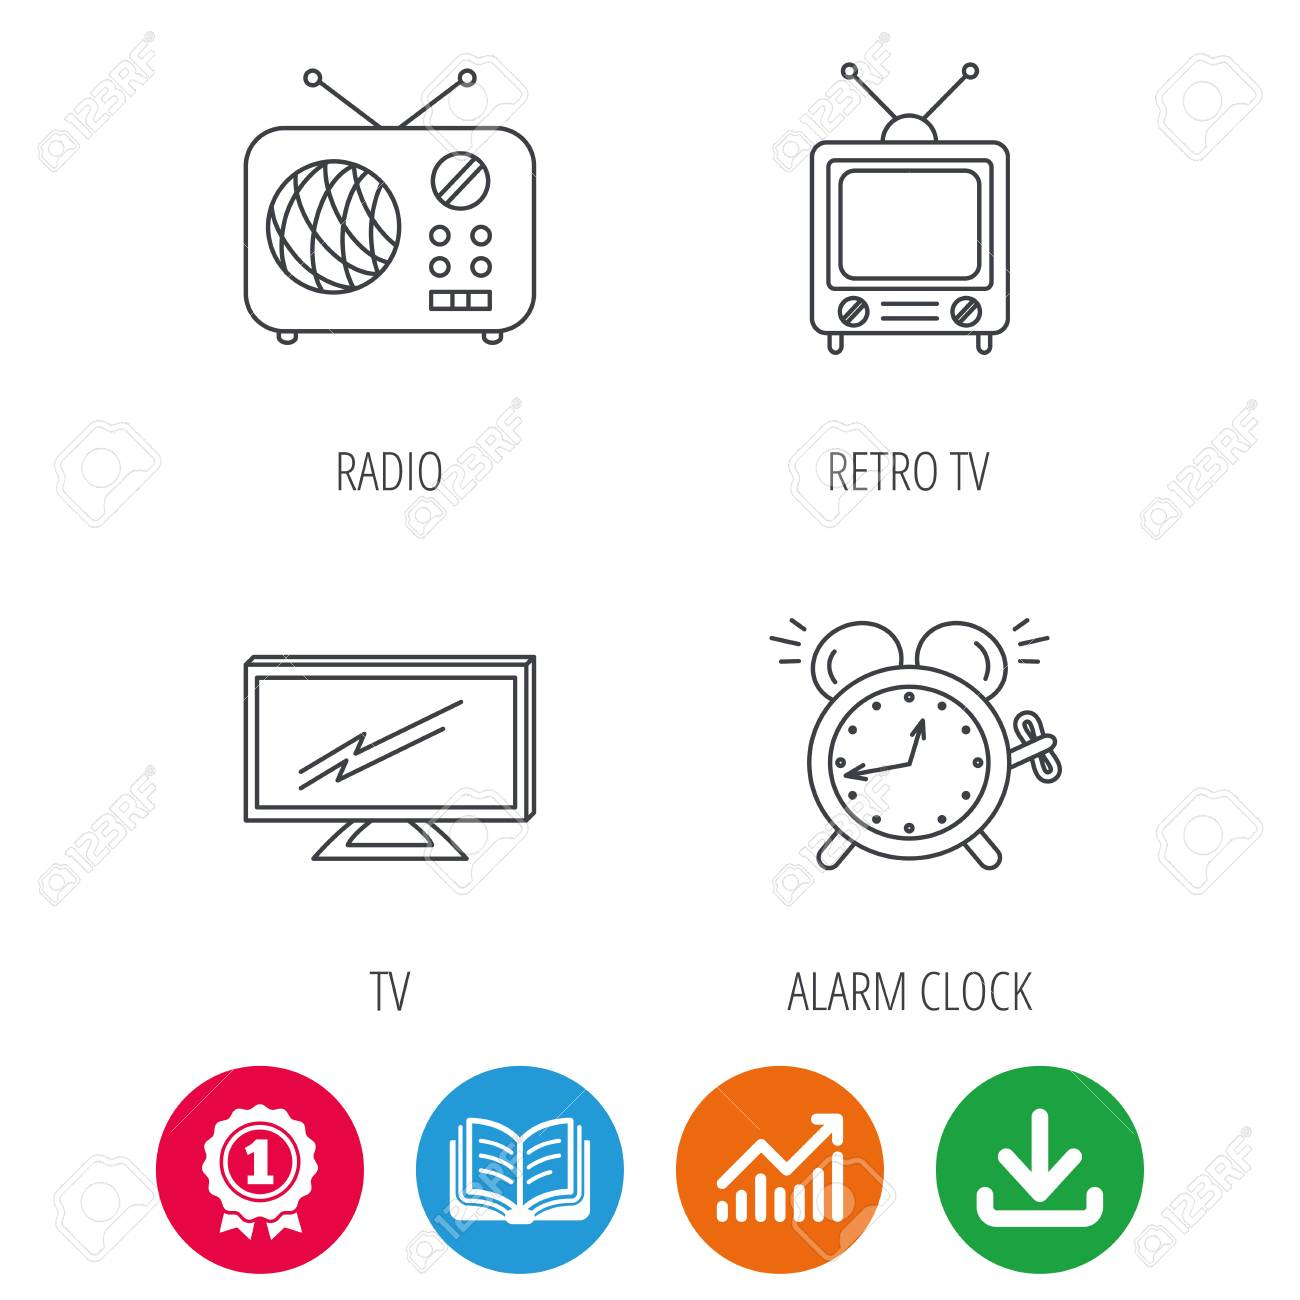 hight resolution of wiring diagram pc icon wiring diagram info alarm diagram icons wiring diagram for youalarm diagram icons